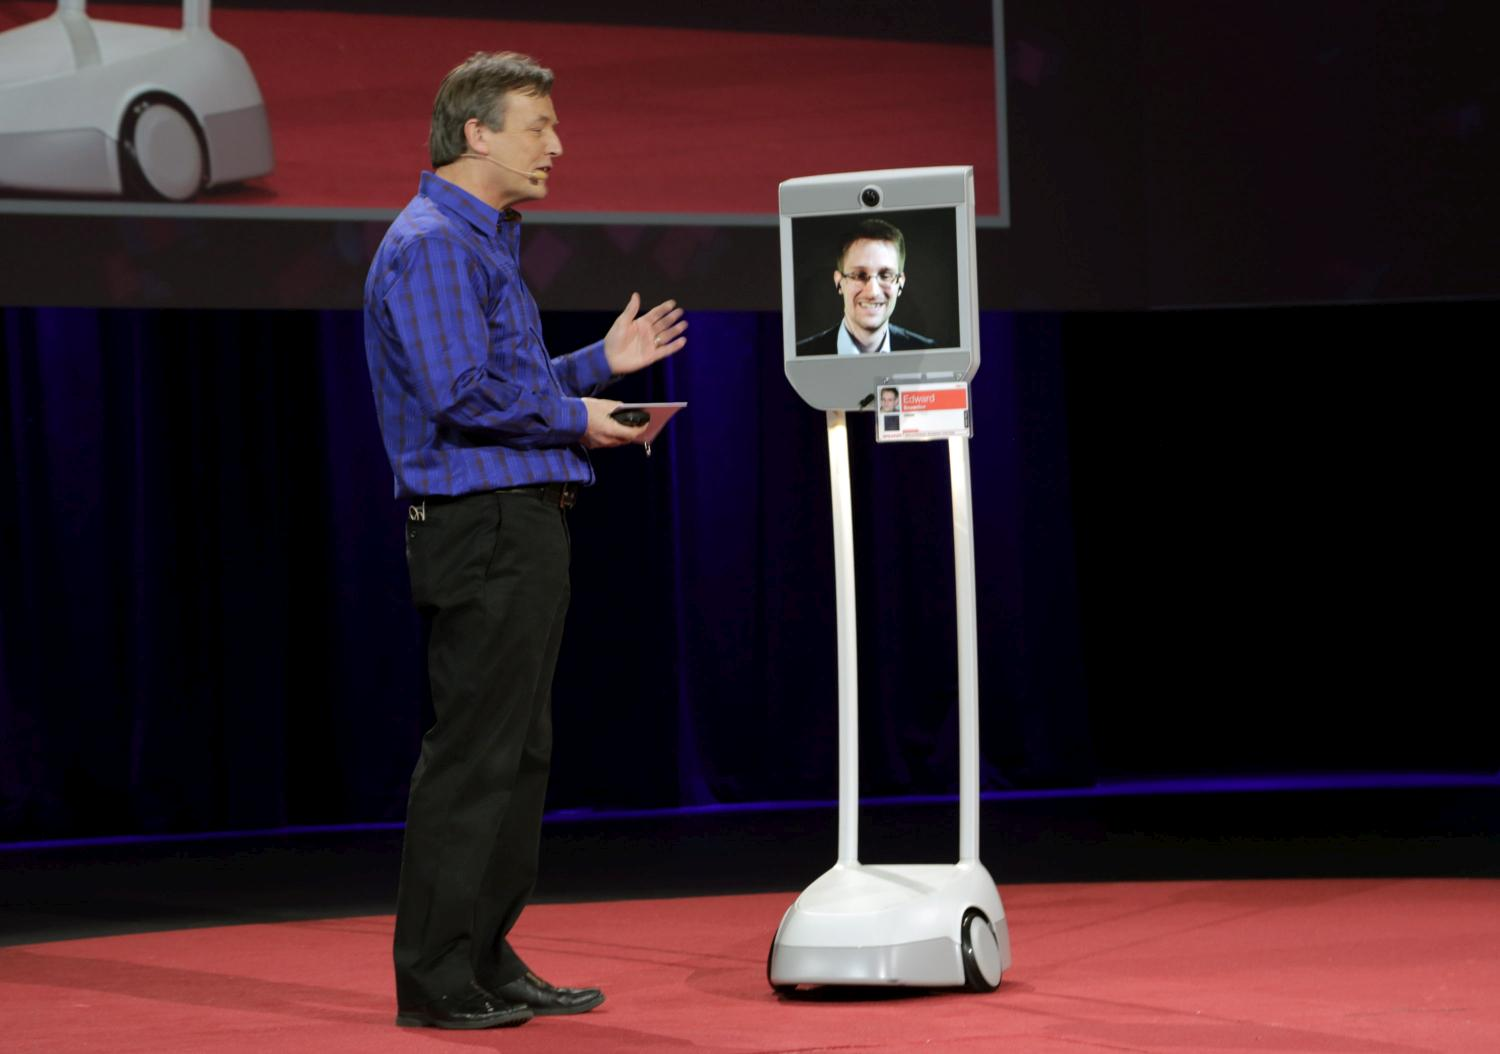 Edward Snowden is interviewed by TED Curator Chris Anderson (L) via a BEAM remote presence system during the 2014 TED conference March 18, 2014 in Vancouver, Canada.